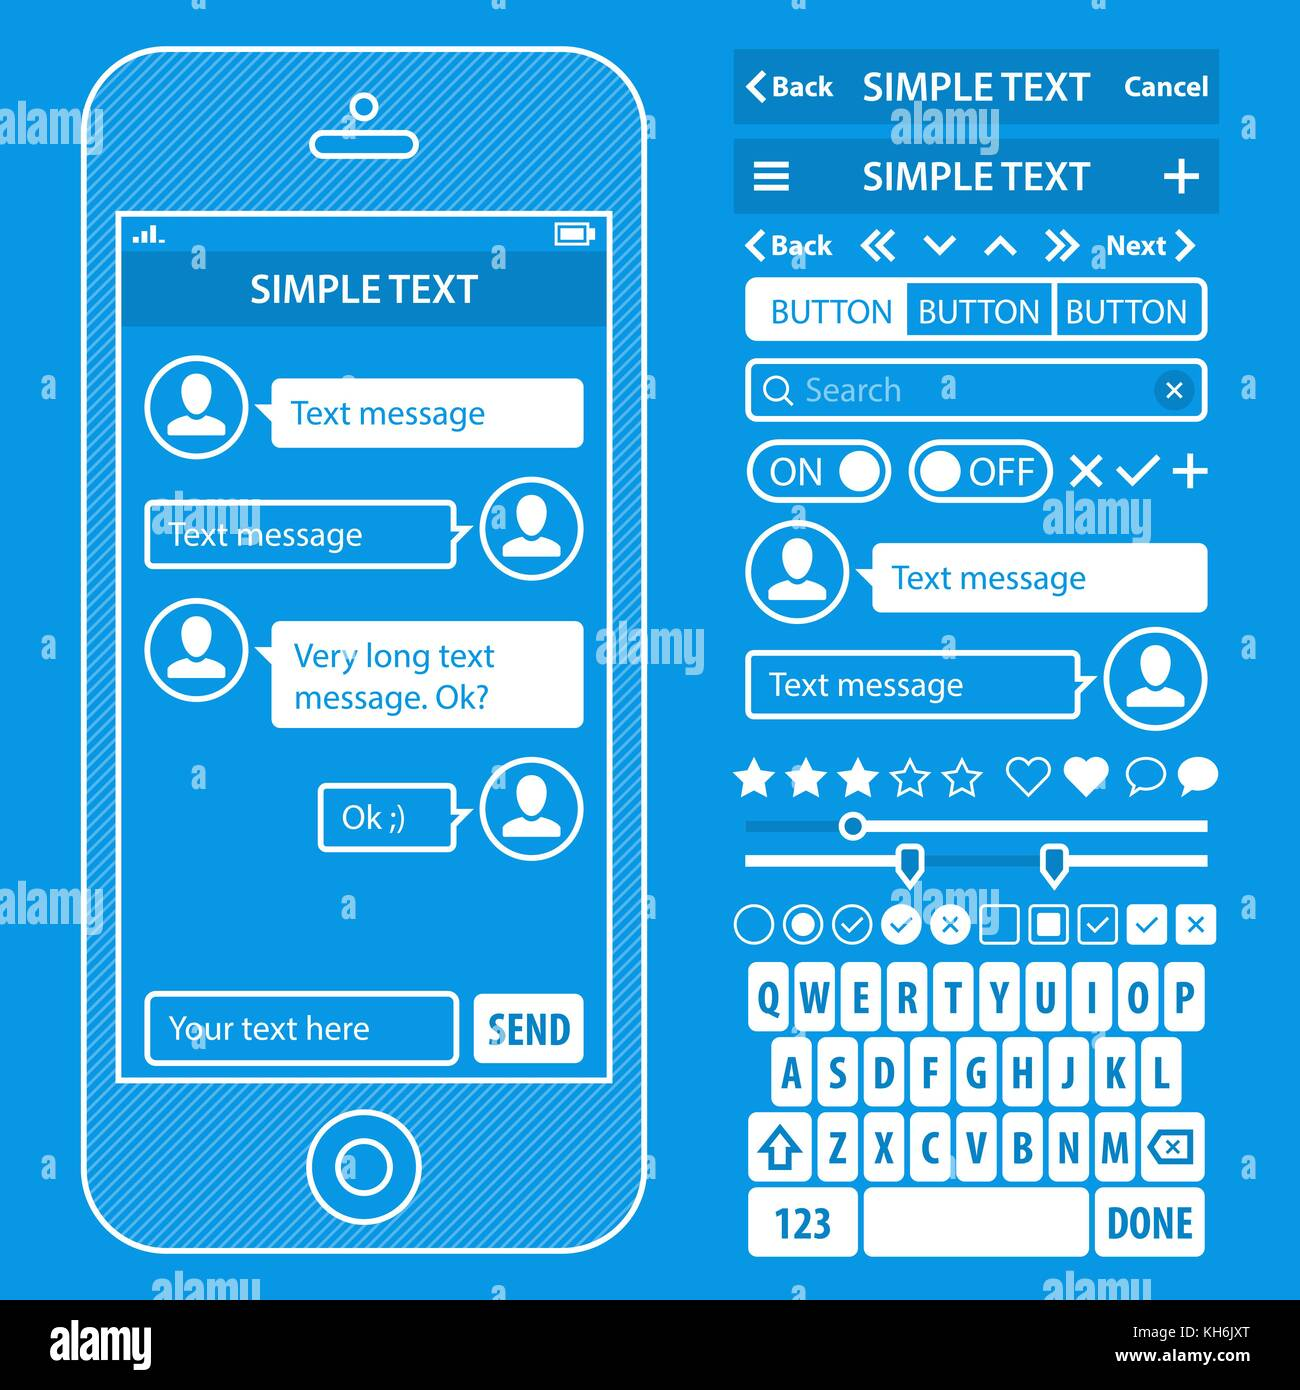 Ui elements blueprint design vector kit in trendy color with ui elements blueprint design vector kit in trendy color with simple mobile phone buttons forms windows and other interface elements chat message s malvernweather Image collections